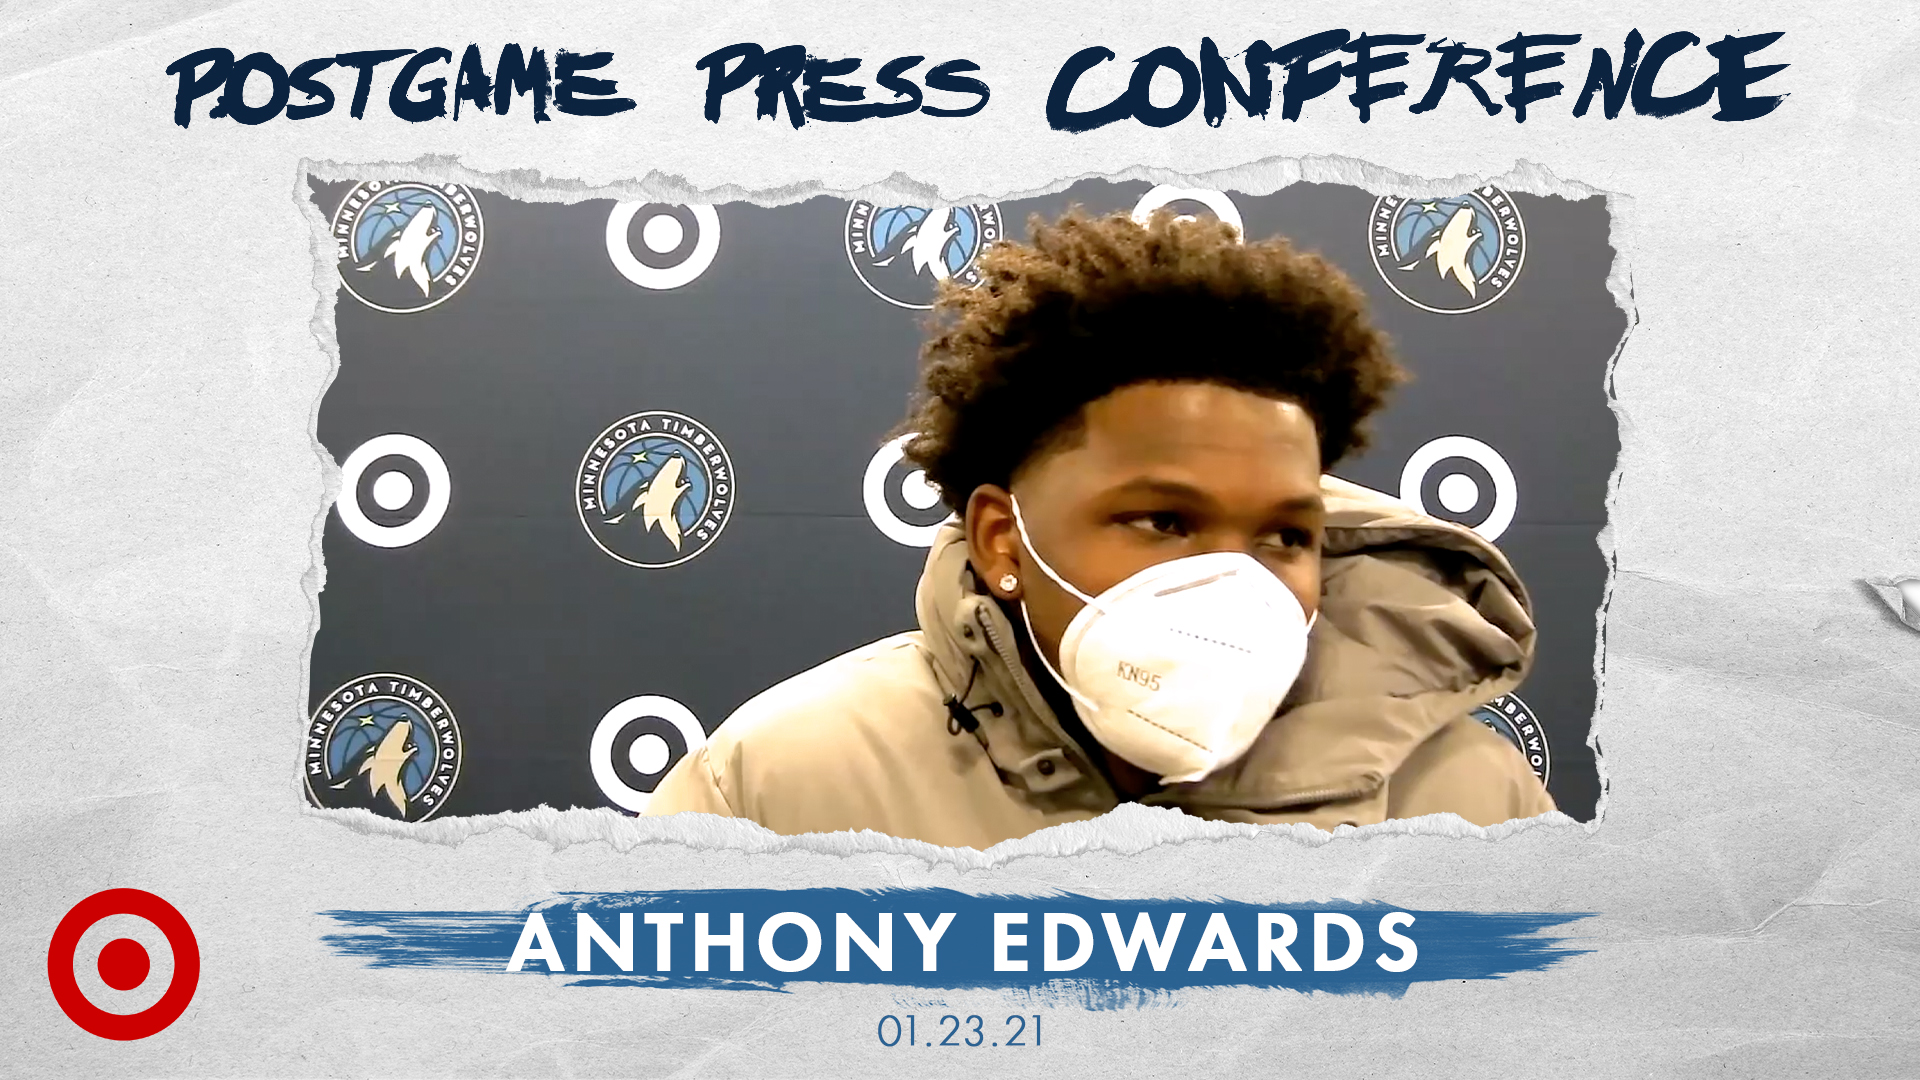 Anthony Edwards Postgame Press Conference - January 23, 2021